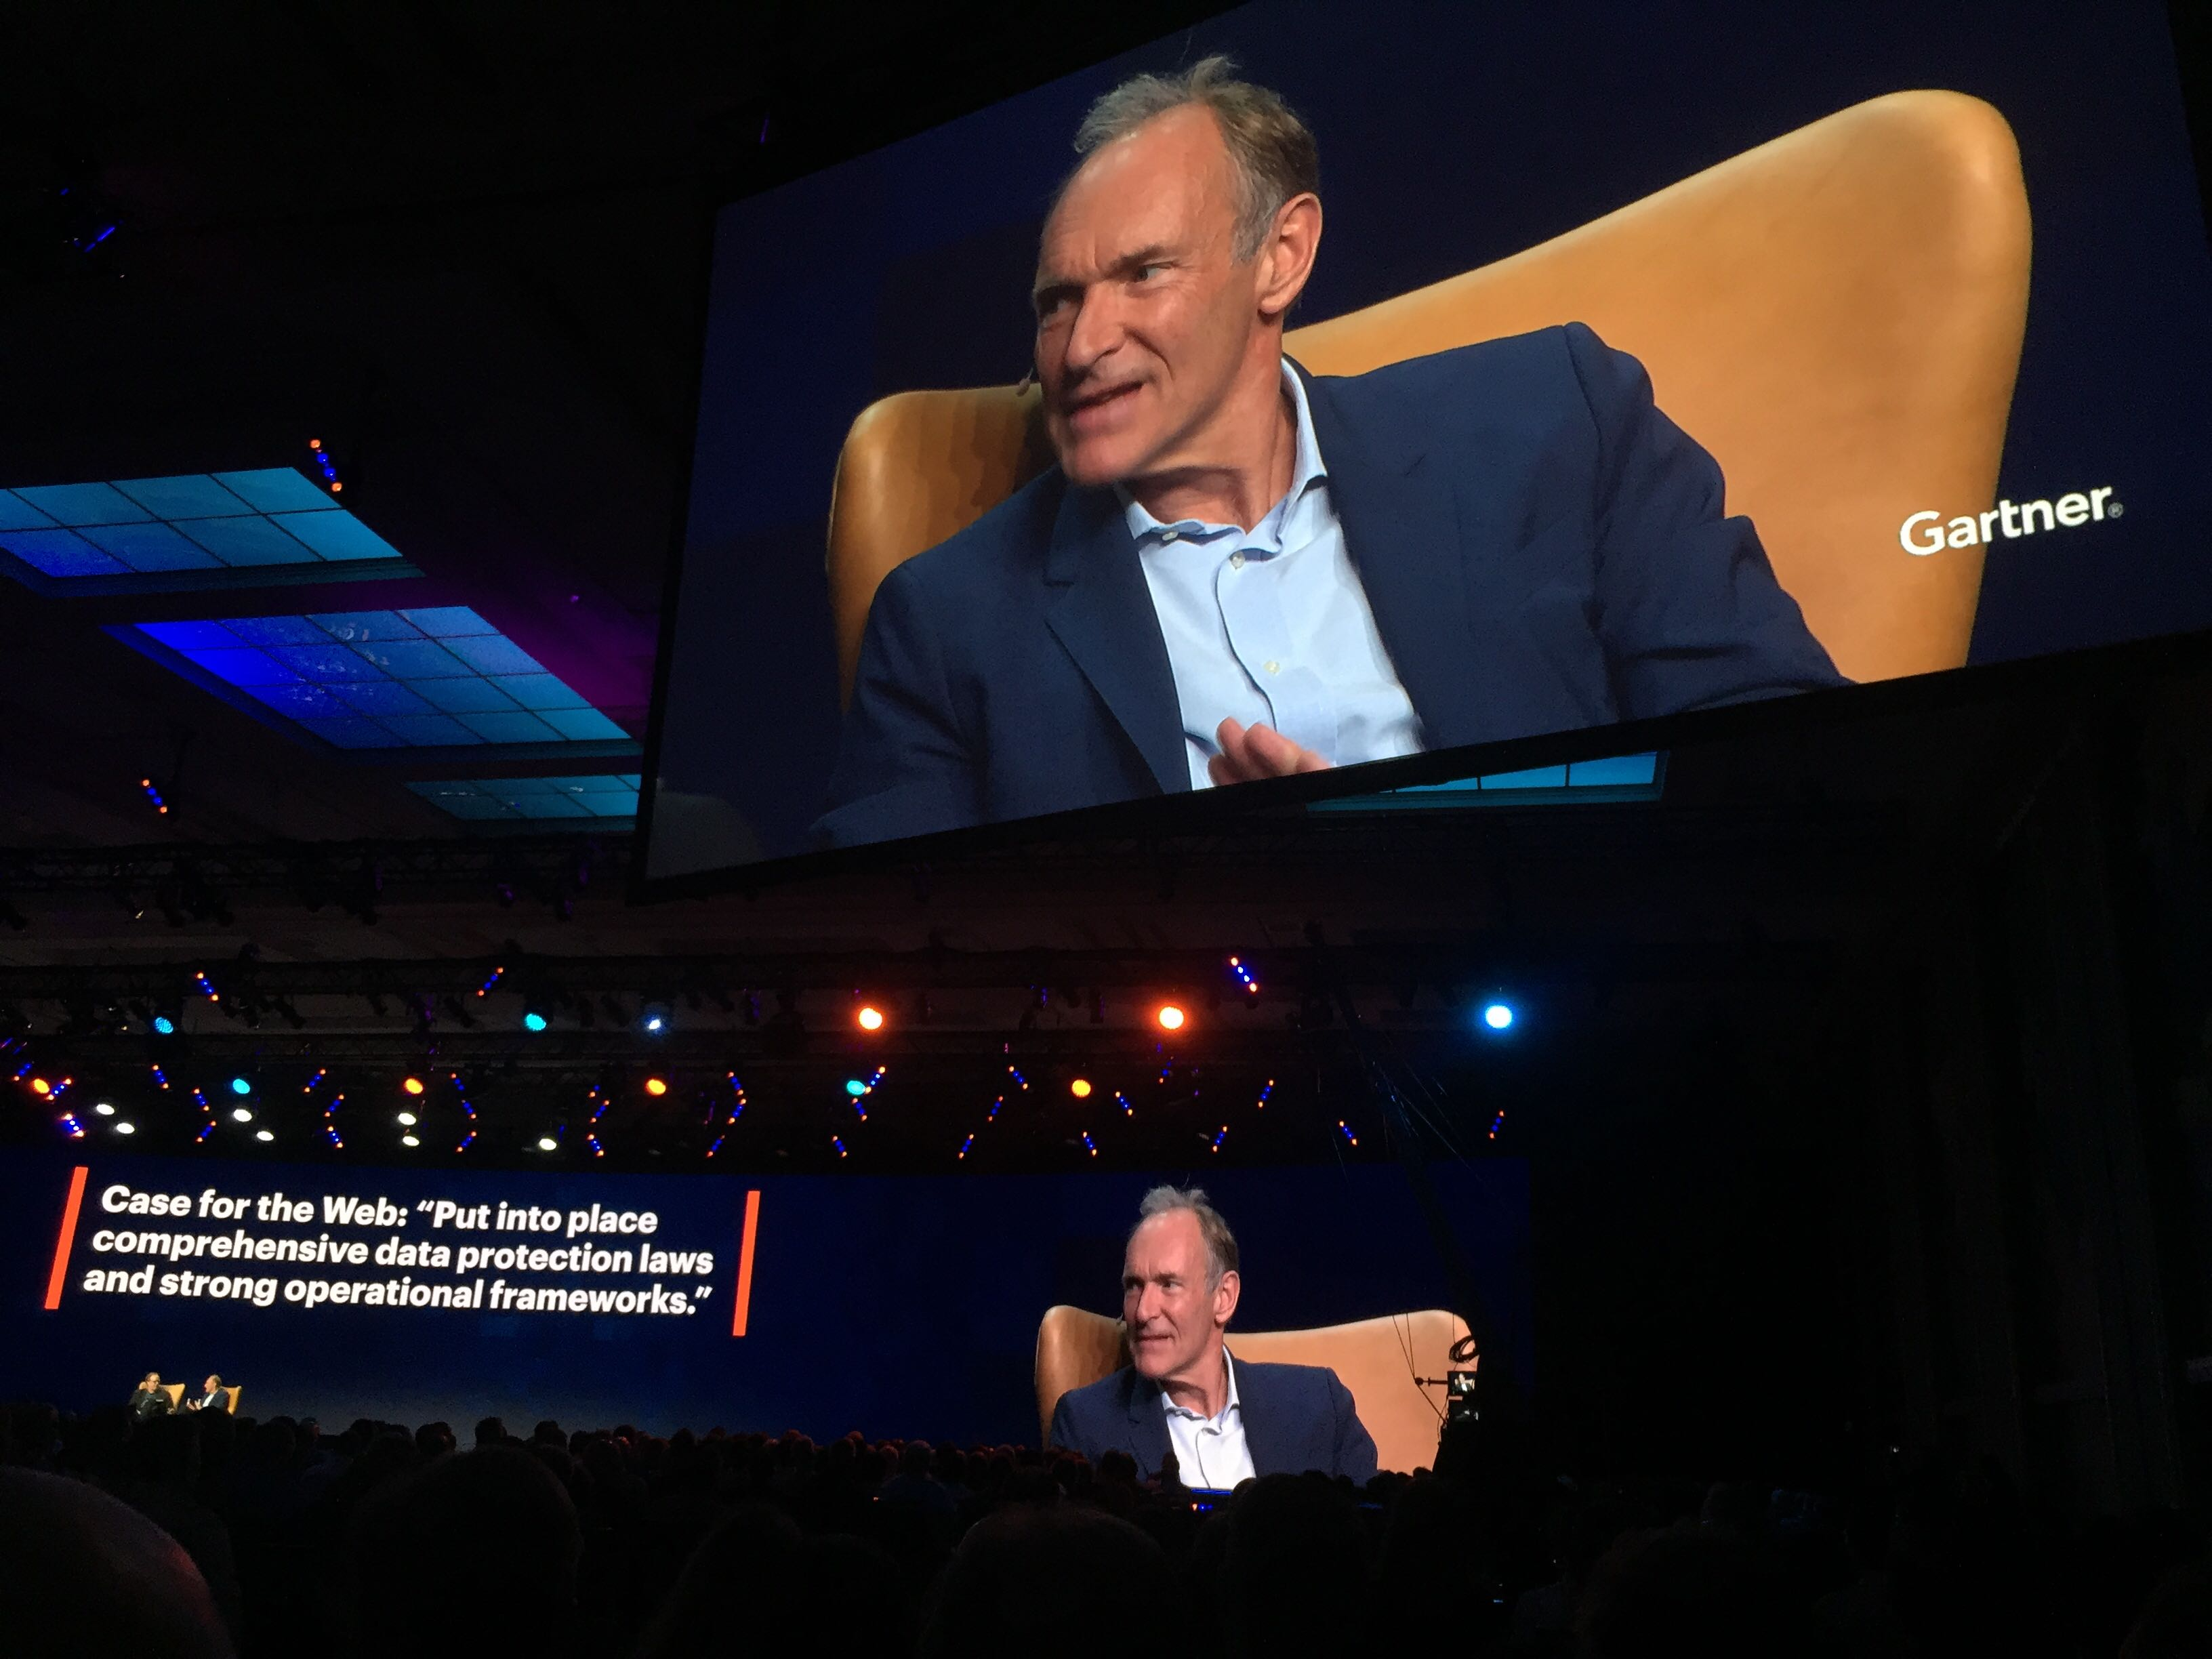 Sir Tim Berners-Lee, inventor of the World Wide Web, was a keynote speaker at the conference this year.